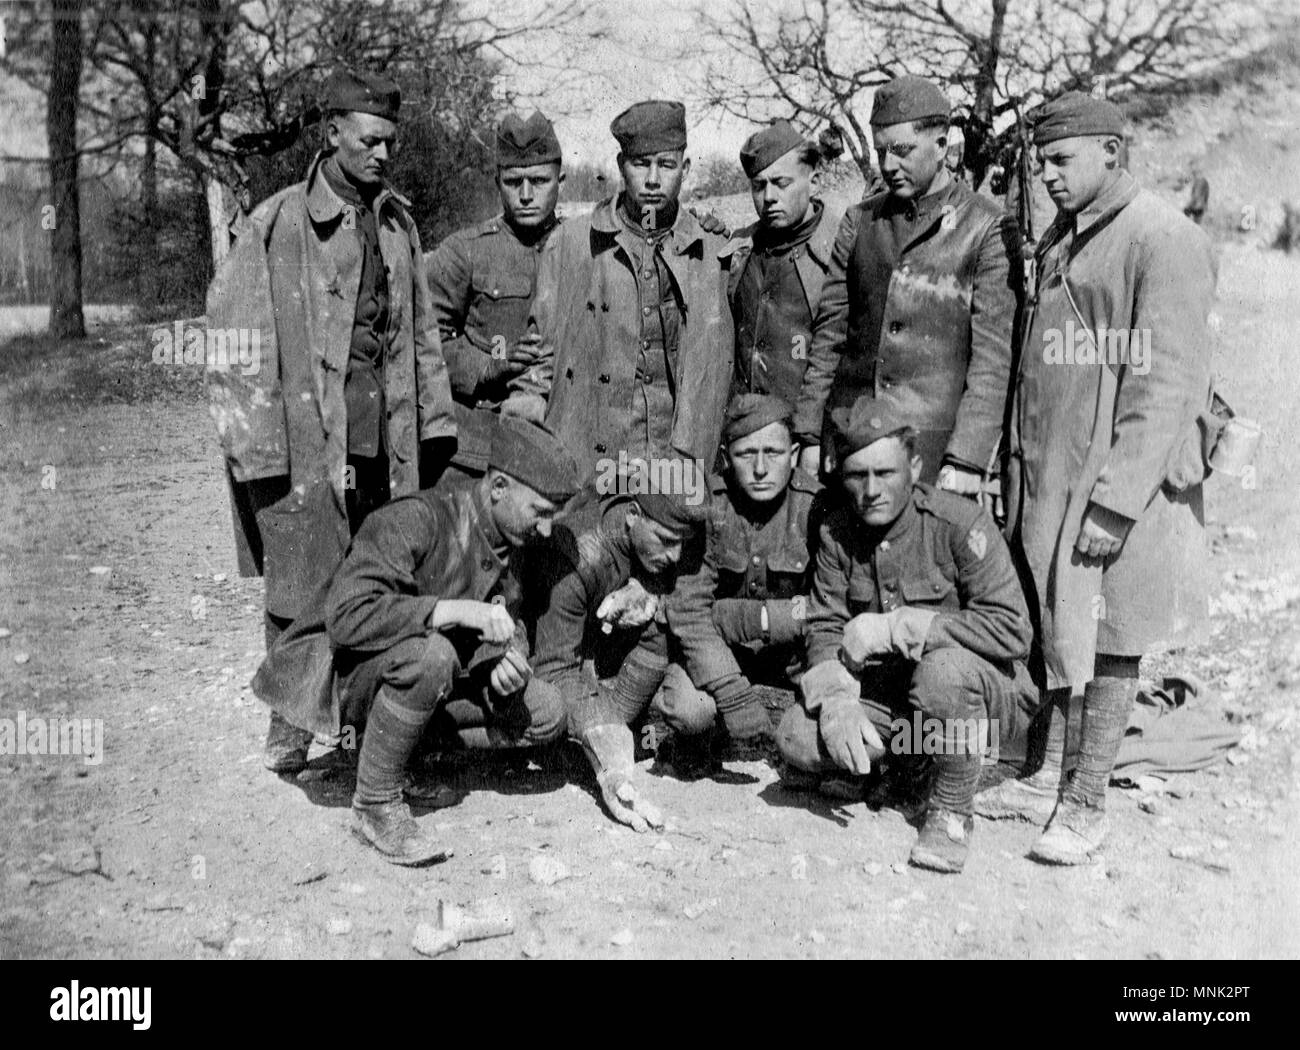 Soldiers posing on battlefield - Stock Image